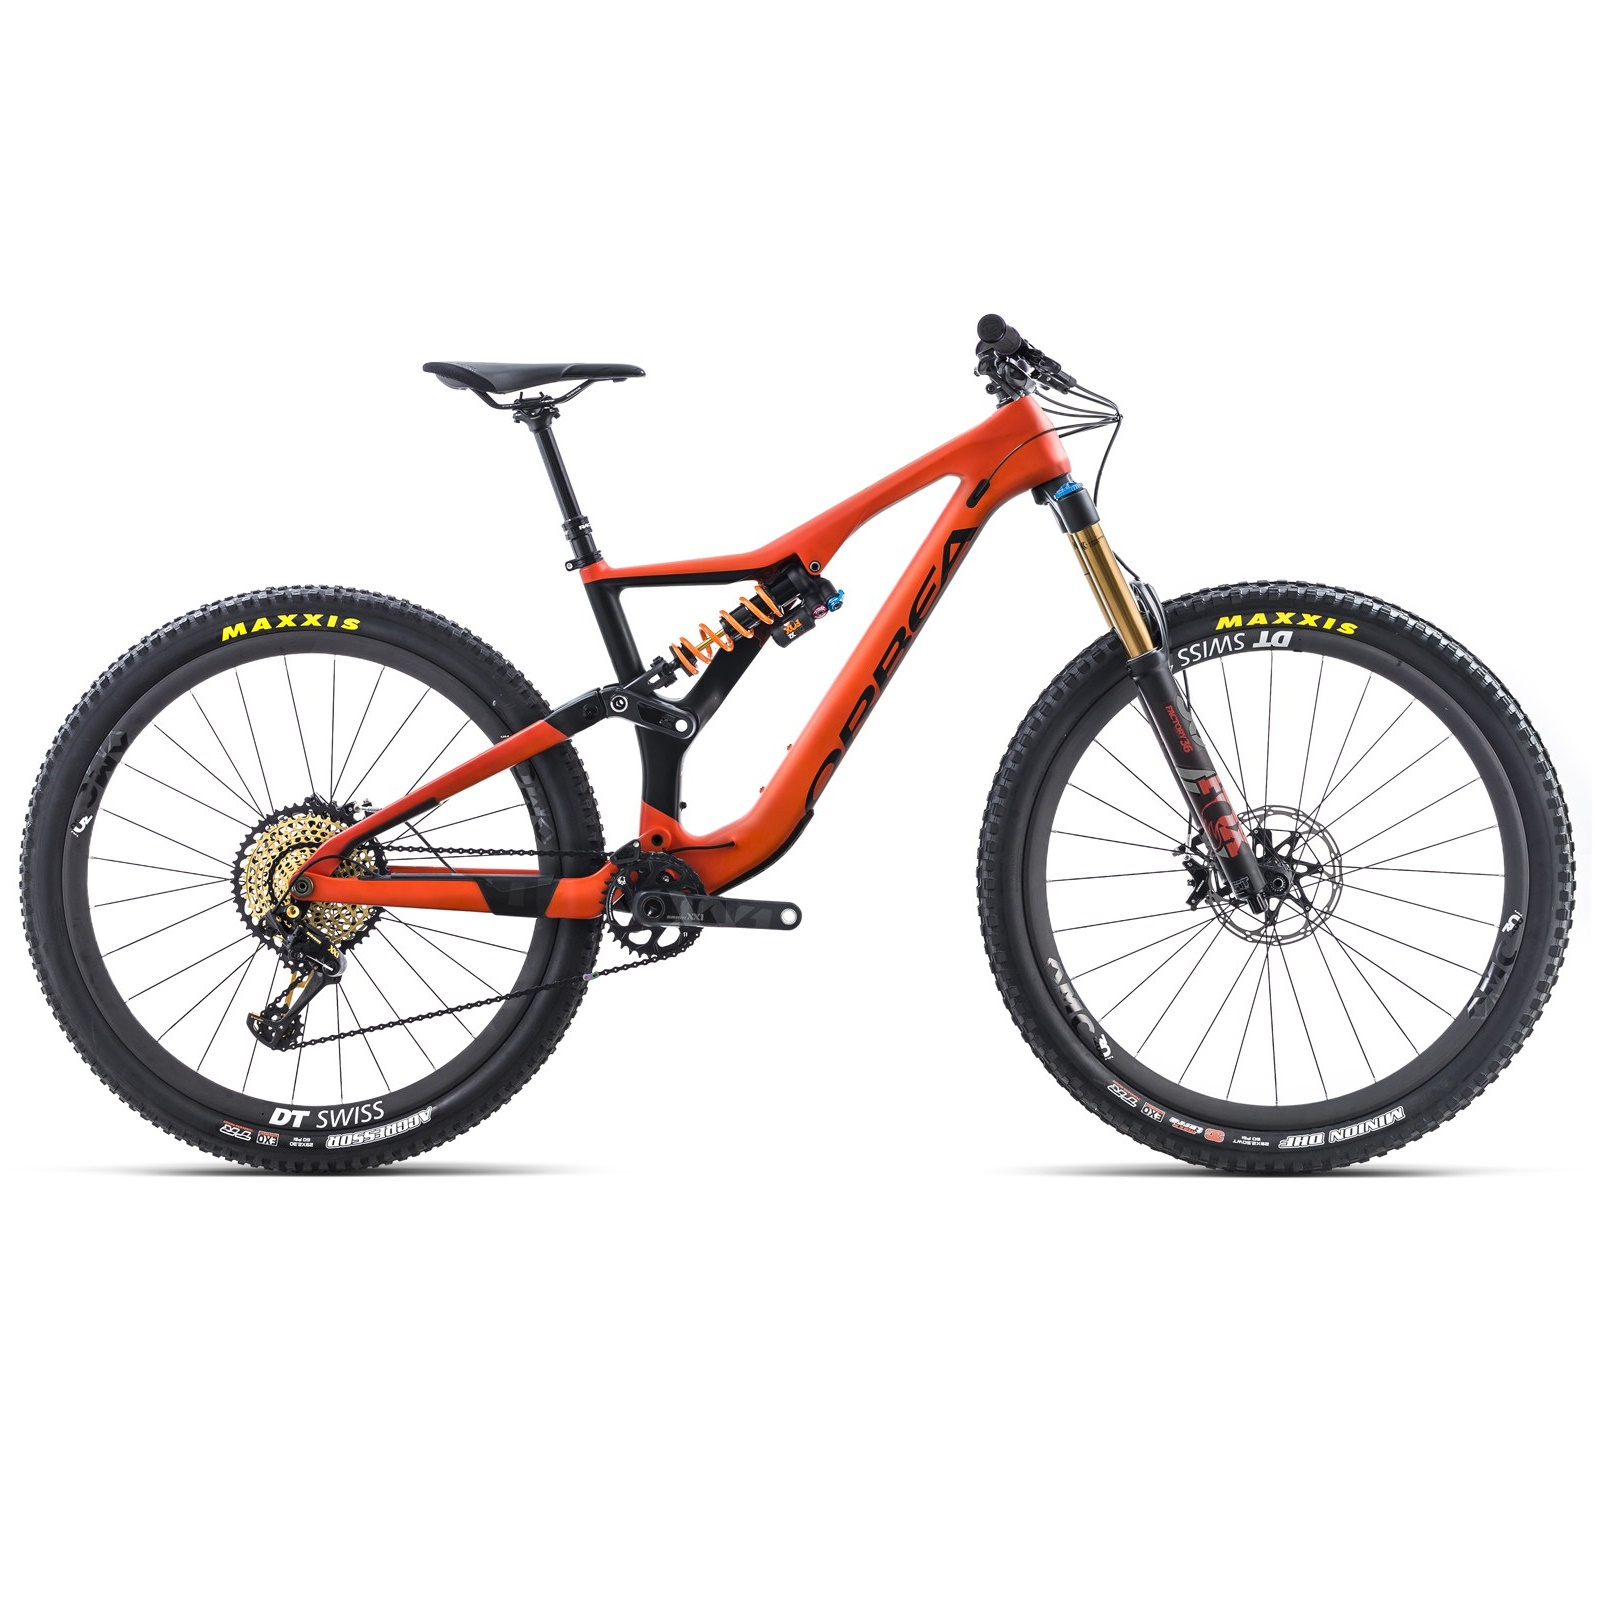 Orbea; orbea bicycles; orbea rallon; orbea rallon 29er; orbea rallon carbon; rallon carbon; carbon rallon; long travel 29er; 160mm 29er; rallon carbon; orbea carbon rallon; orbea carbon rallon; new orbea carbon rallon; 29er trail bike; 29er enduro bike; enduro bikes; best endur bike; enduralin; orbea dealer; orbea uk dealer; orbea bikes; orbea rallon m-ltd; orbea rallon m-team; orbea rallon m10; orbea rallon carbon m-ltd; orbea rallon carbon m10; orbea rallon carbon; new carbon rallon; new 29er rallon